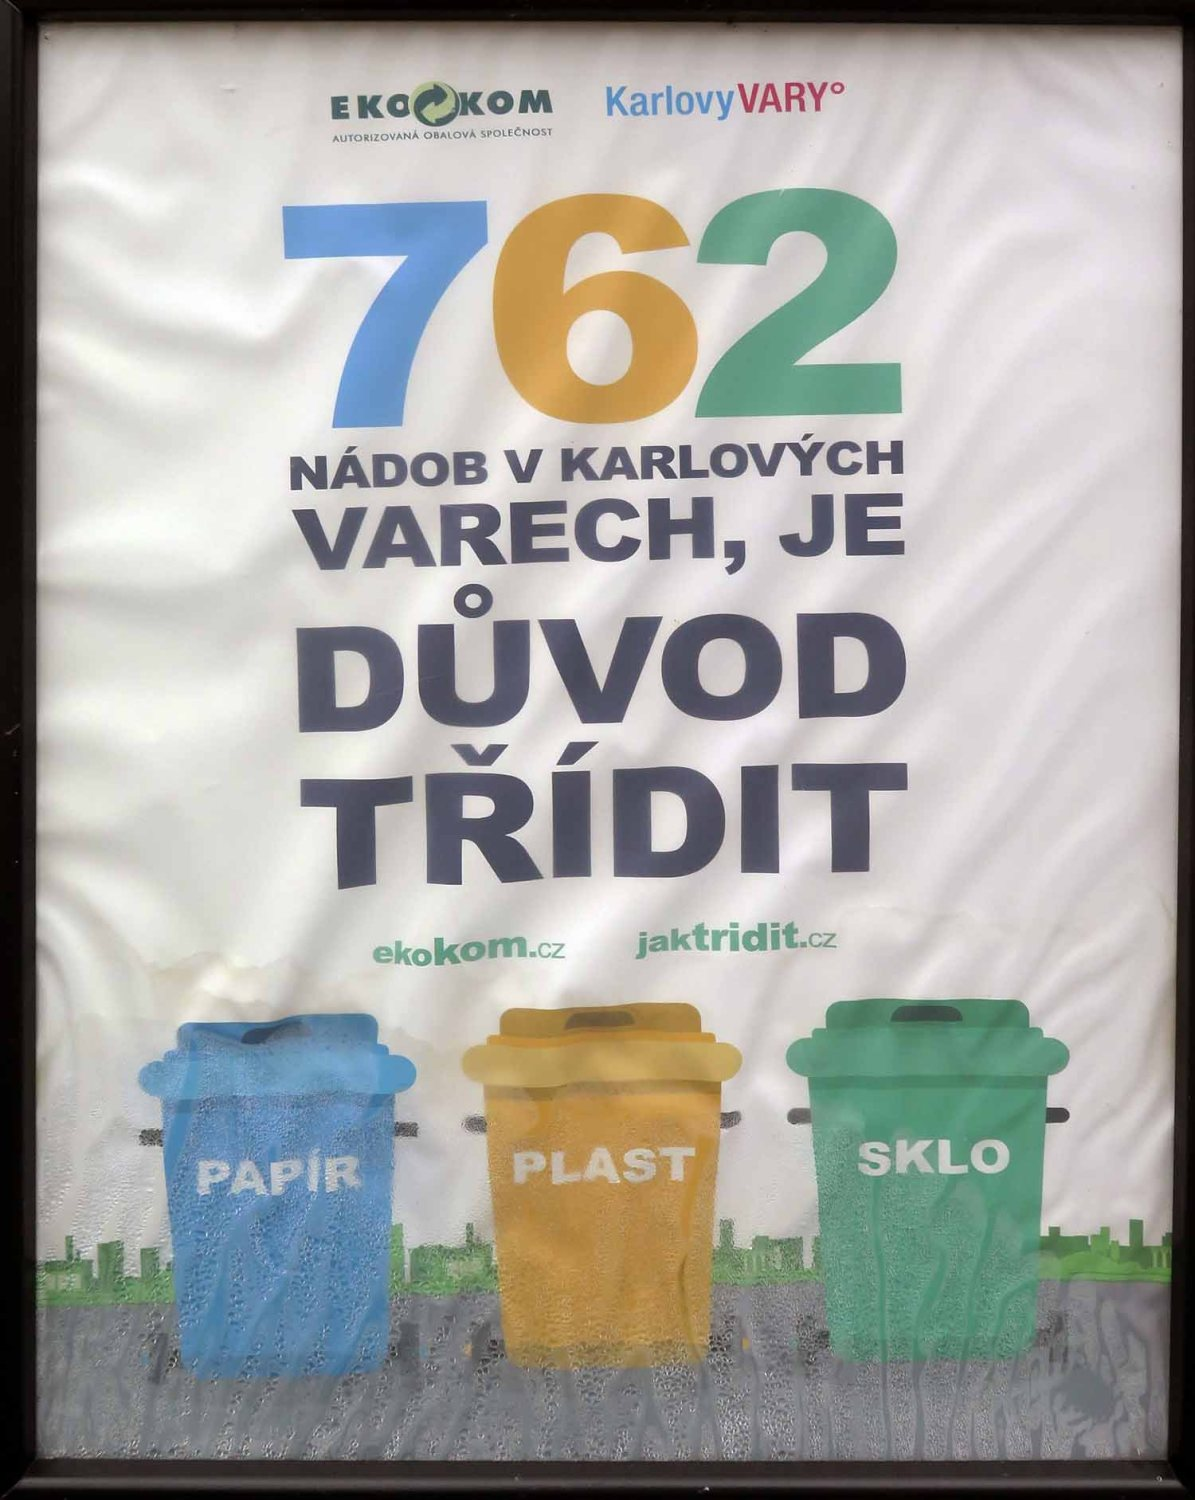 Czech-Republic-Karlovy-Vary-Recycling